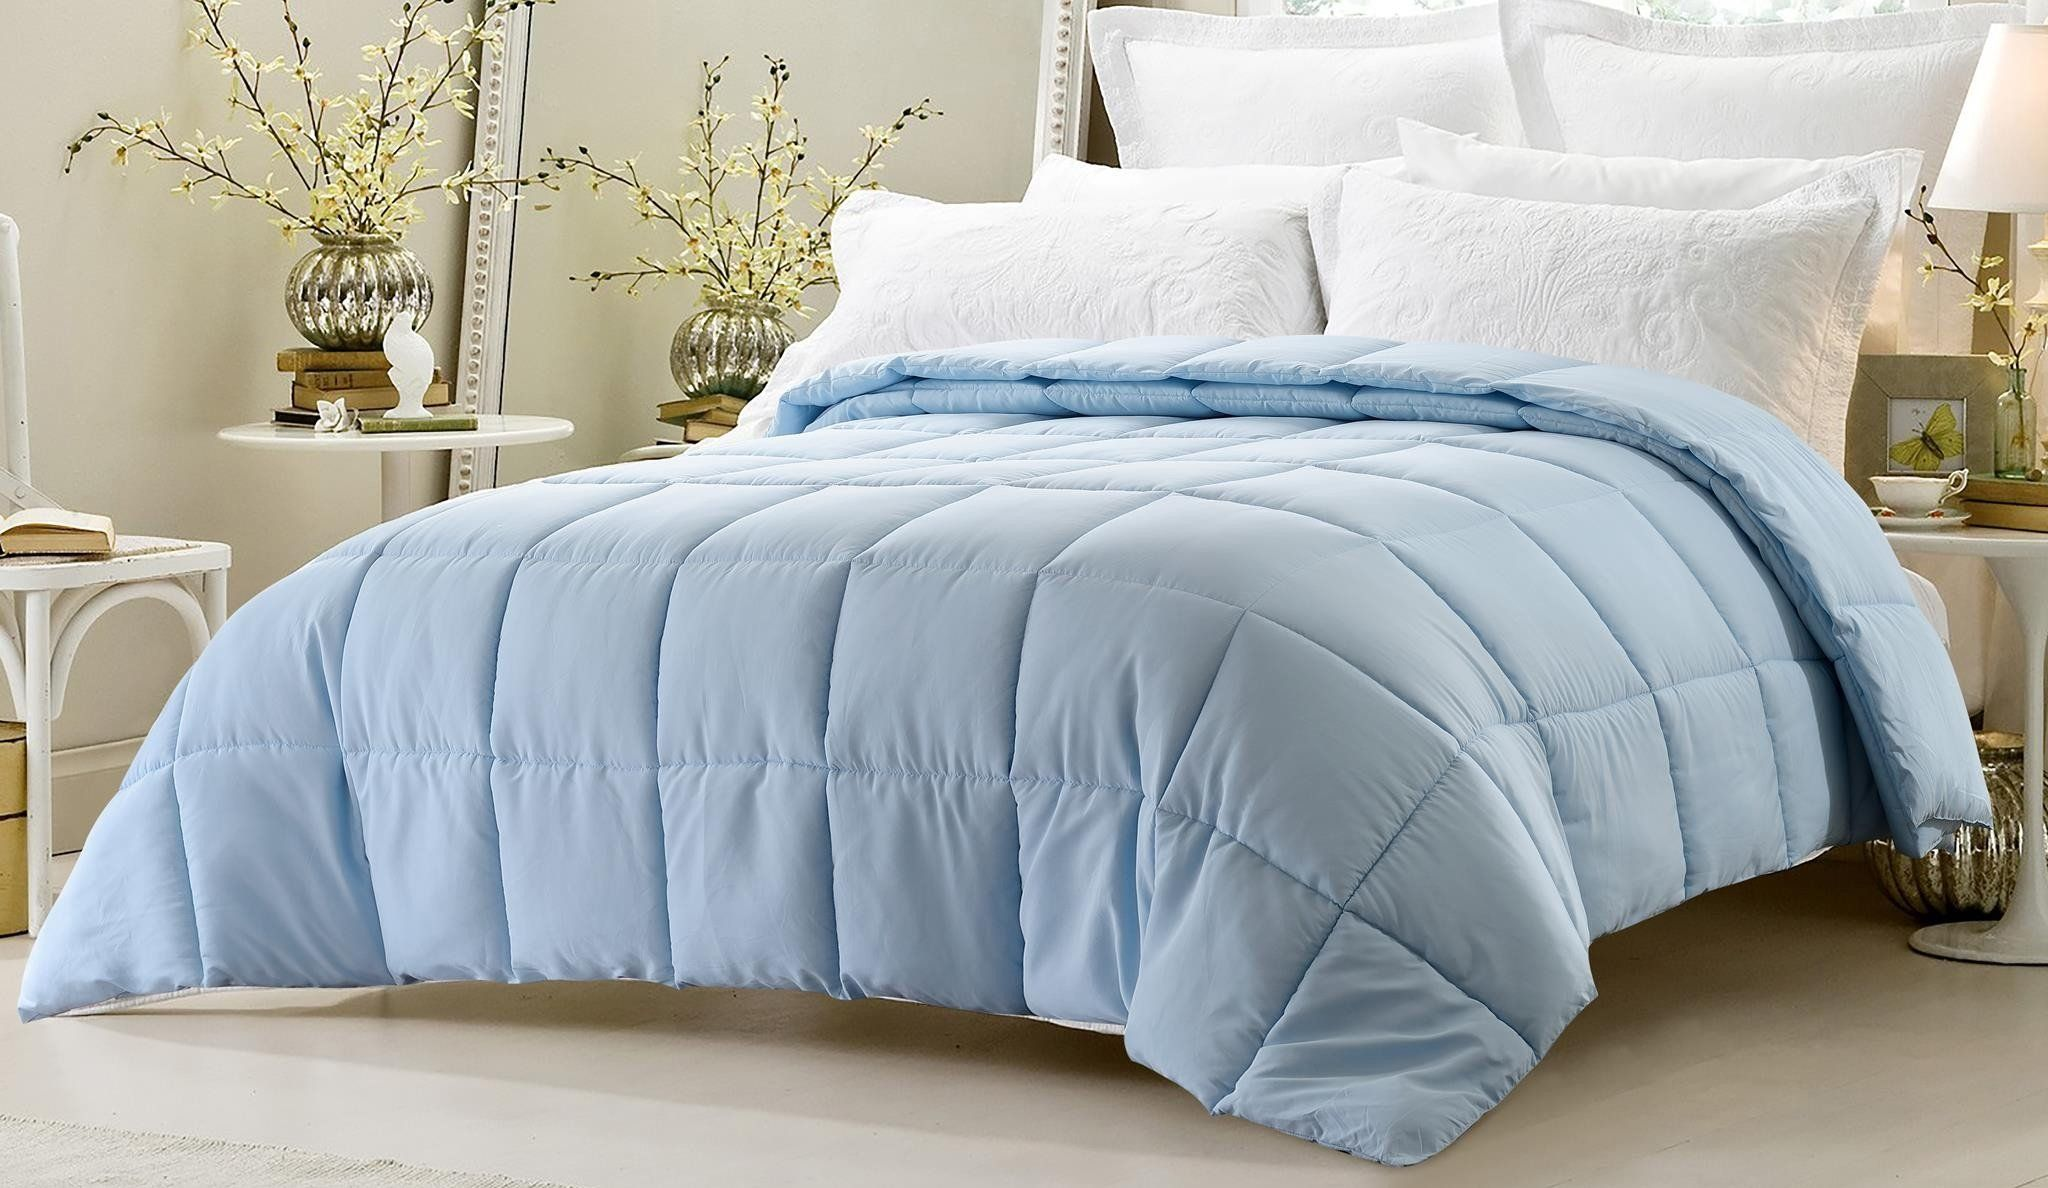 Super Oversized High Quality Down Alternative Comforter Fits Pillow